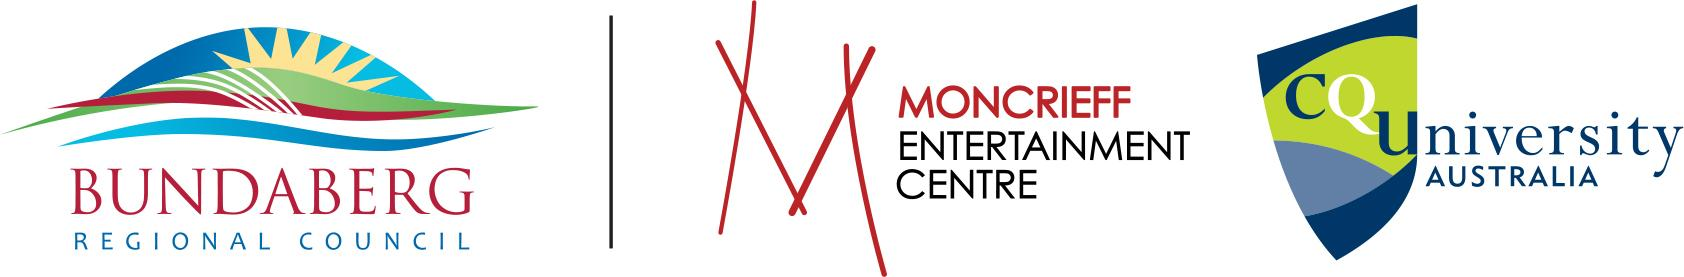 Bundaberg Regional Council, Moncrieff Entertainment Centre and Central Queensland University logo block